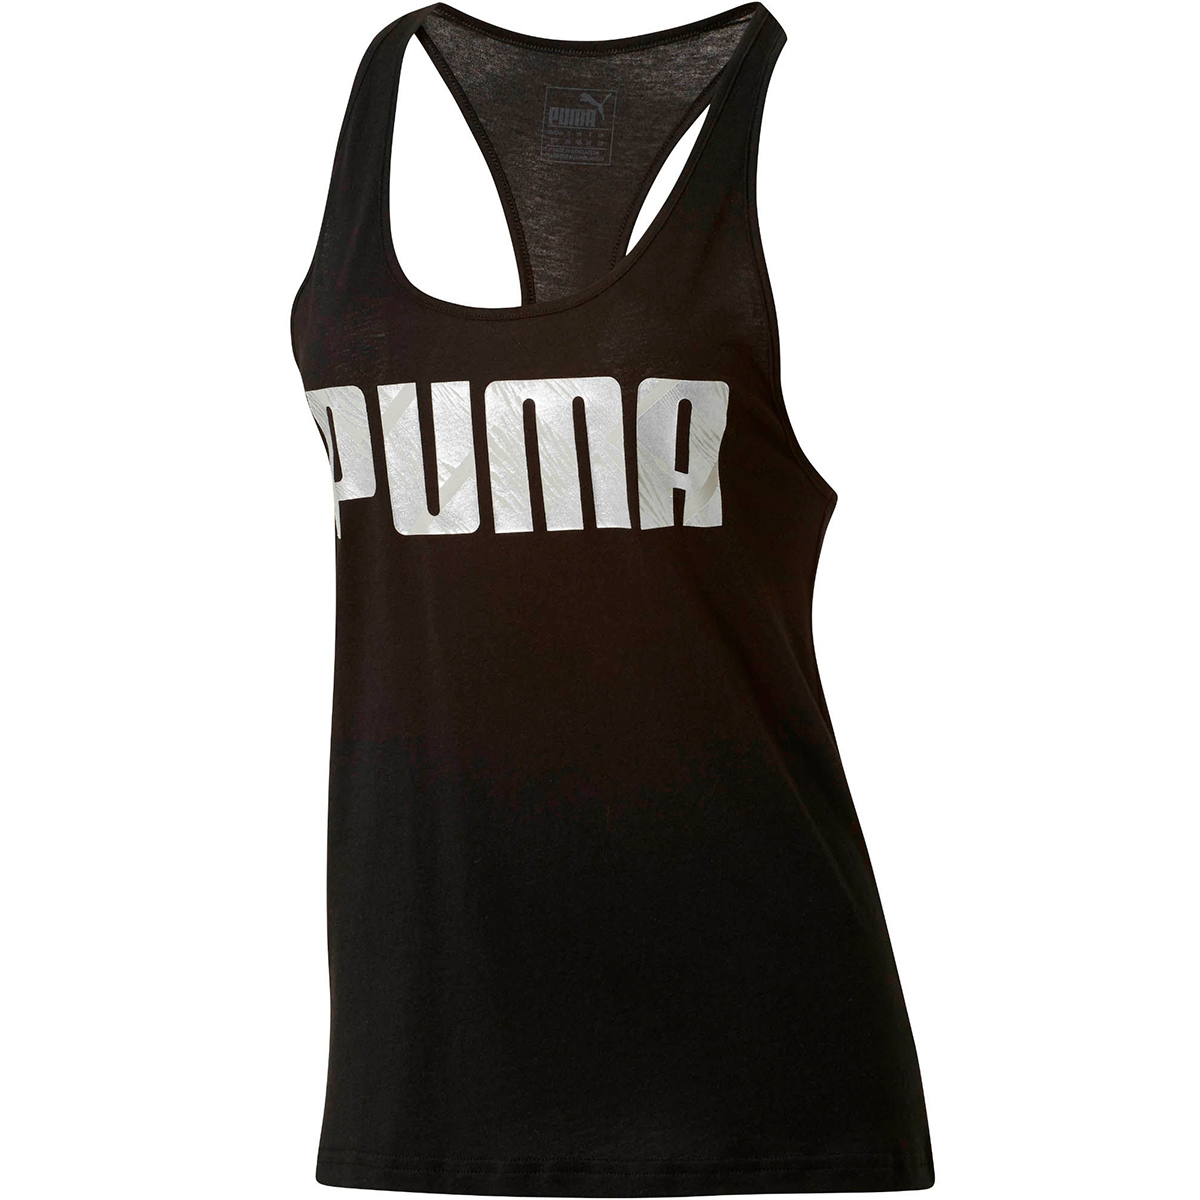 Puma Women's Summer Tank Top - Black, M